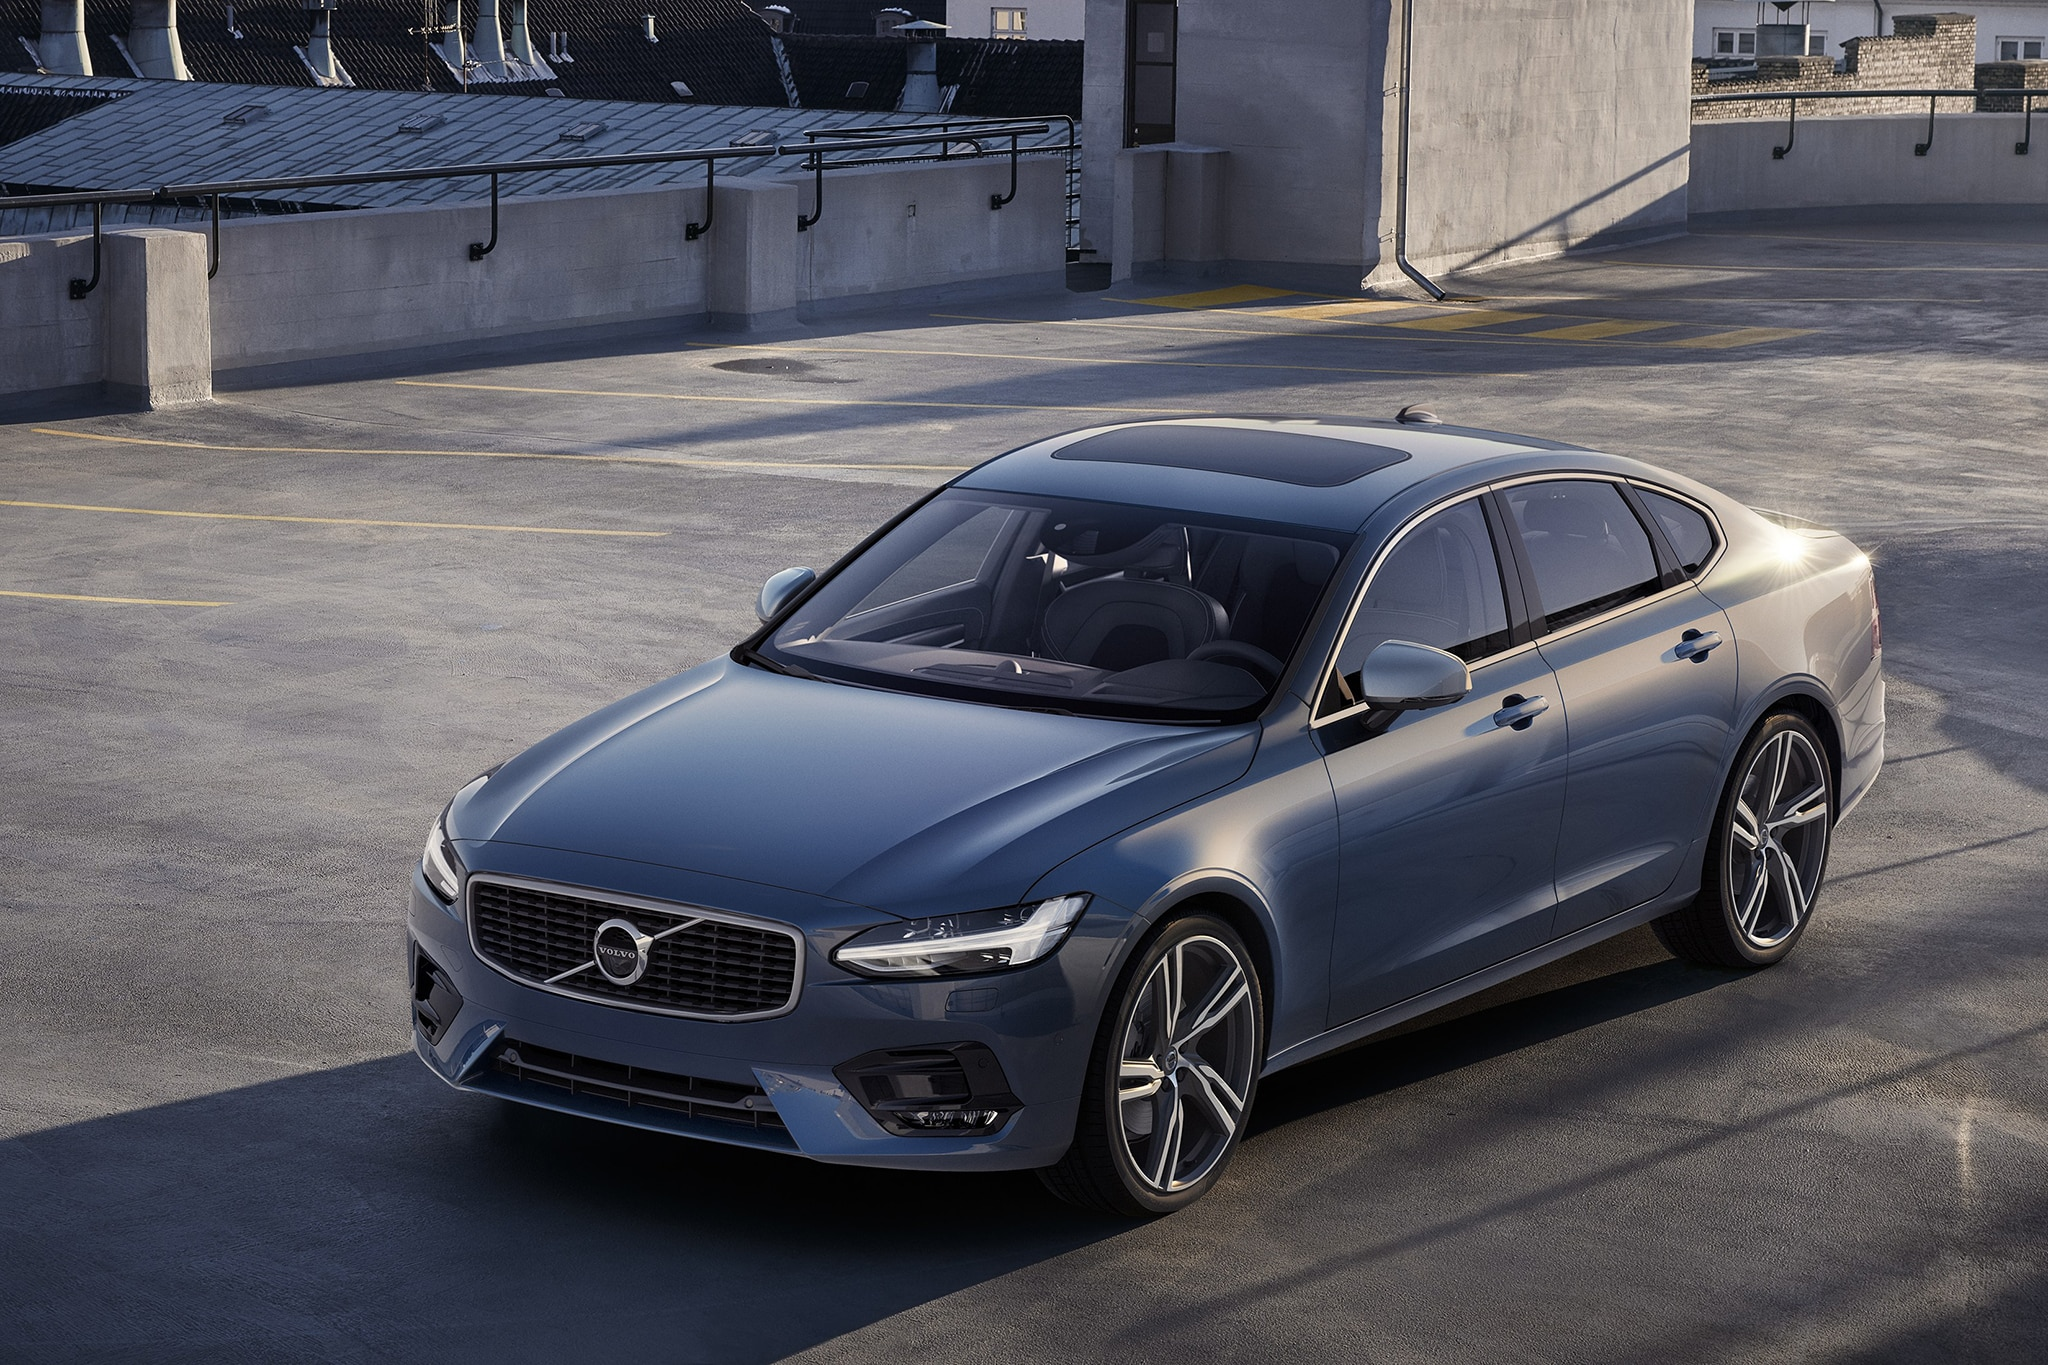 2017 volvo s90 luxury sedan fully revealed with xc90 inspired design. Black Bedroom Furniture Sets. Home Design Ideas